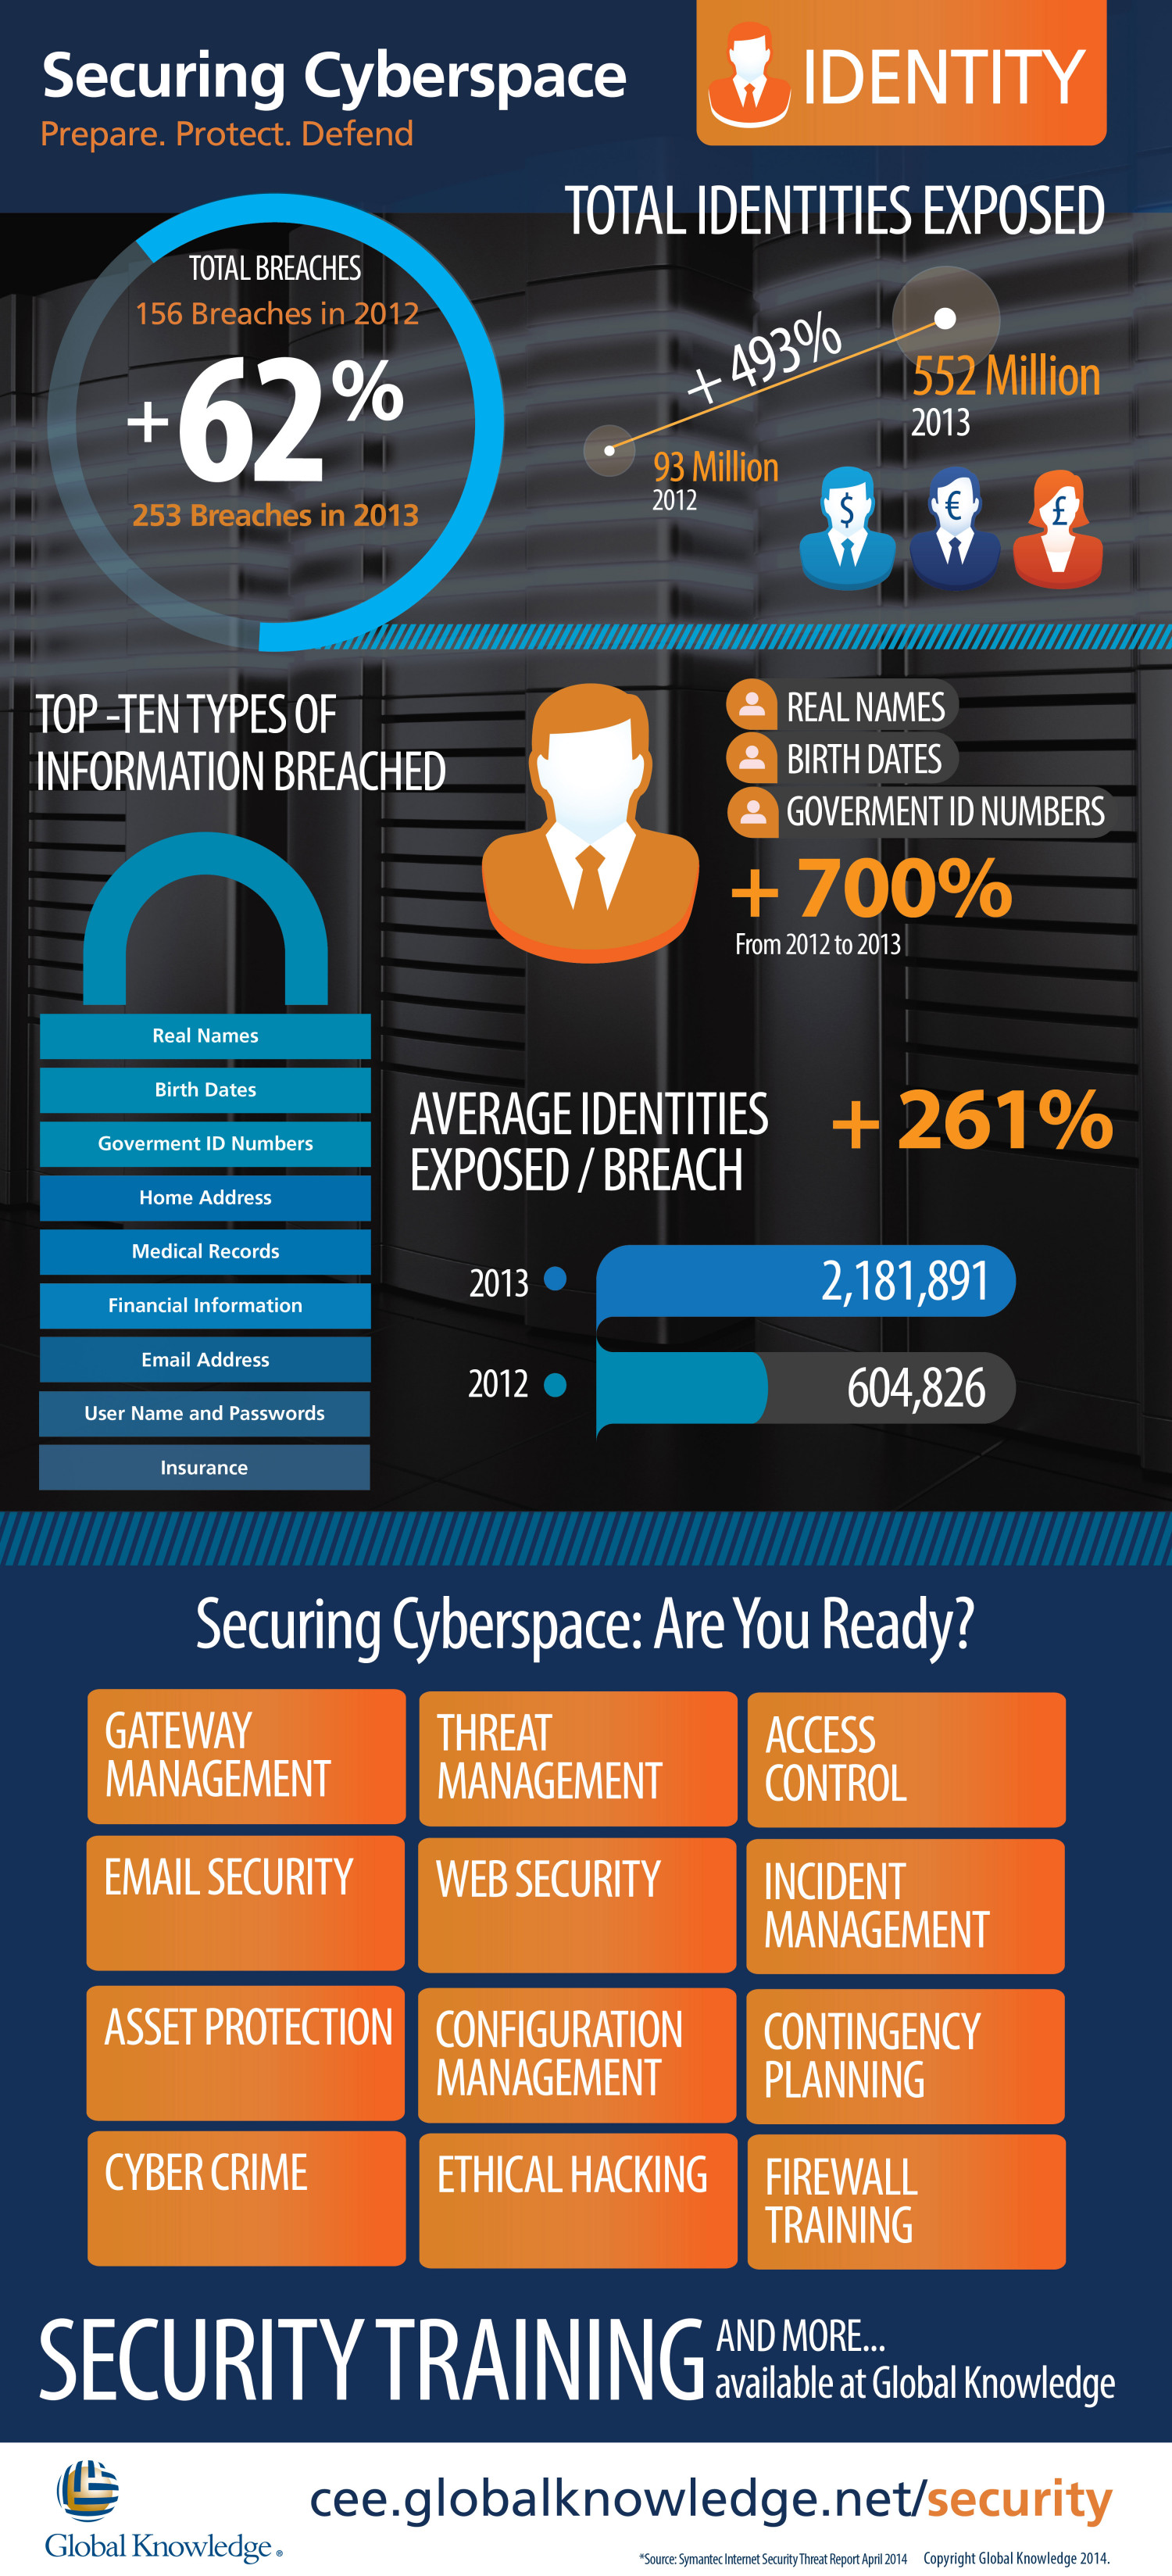 Identity Security - Security Training at Global Knowledge Infographic